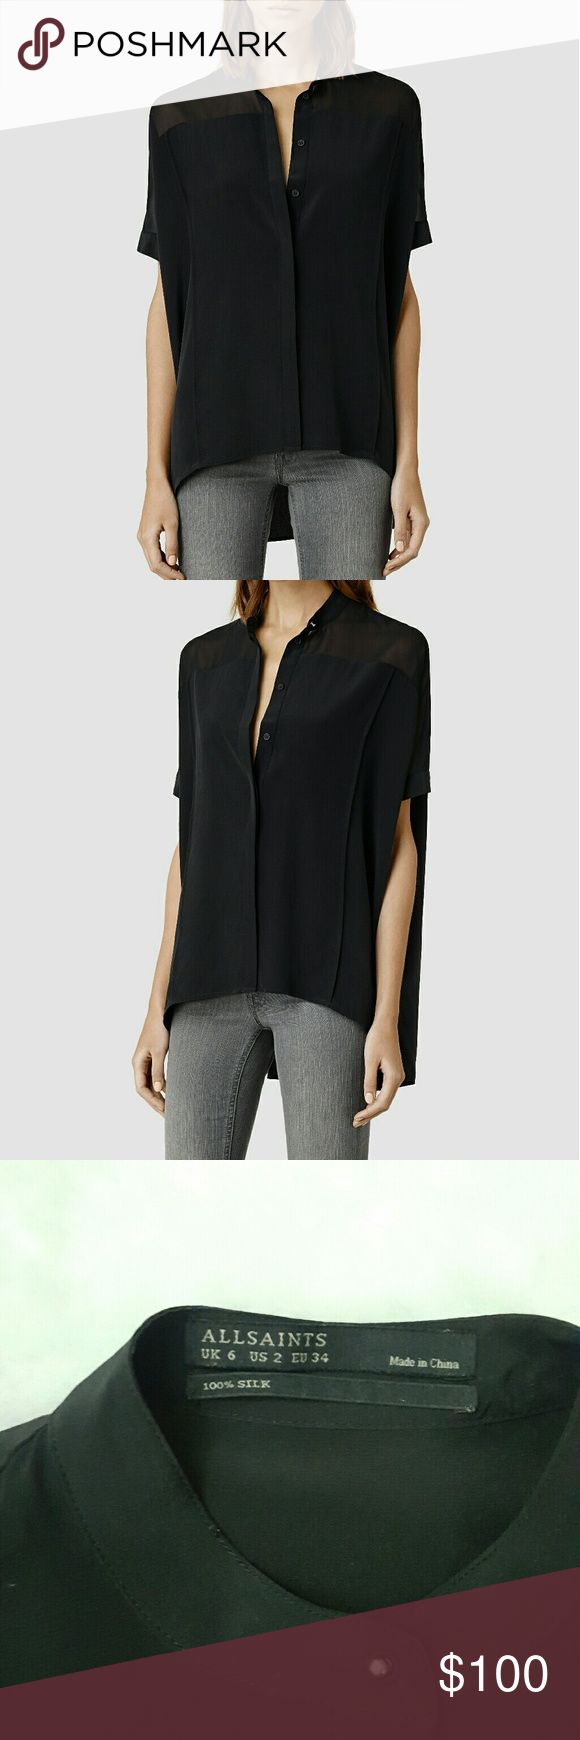 Allsaints Silk Fleet Shirt in Black US2 $268 ALLSAINTS' luxurious silk high-low oversized, relaxed shirt.  Size:  US2 Worn once! Gently pre-owned.  No rips, snags, or stains. All Saints Tops